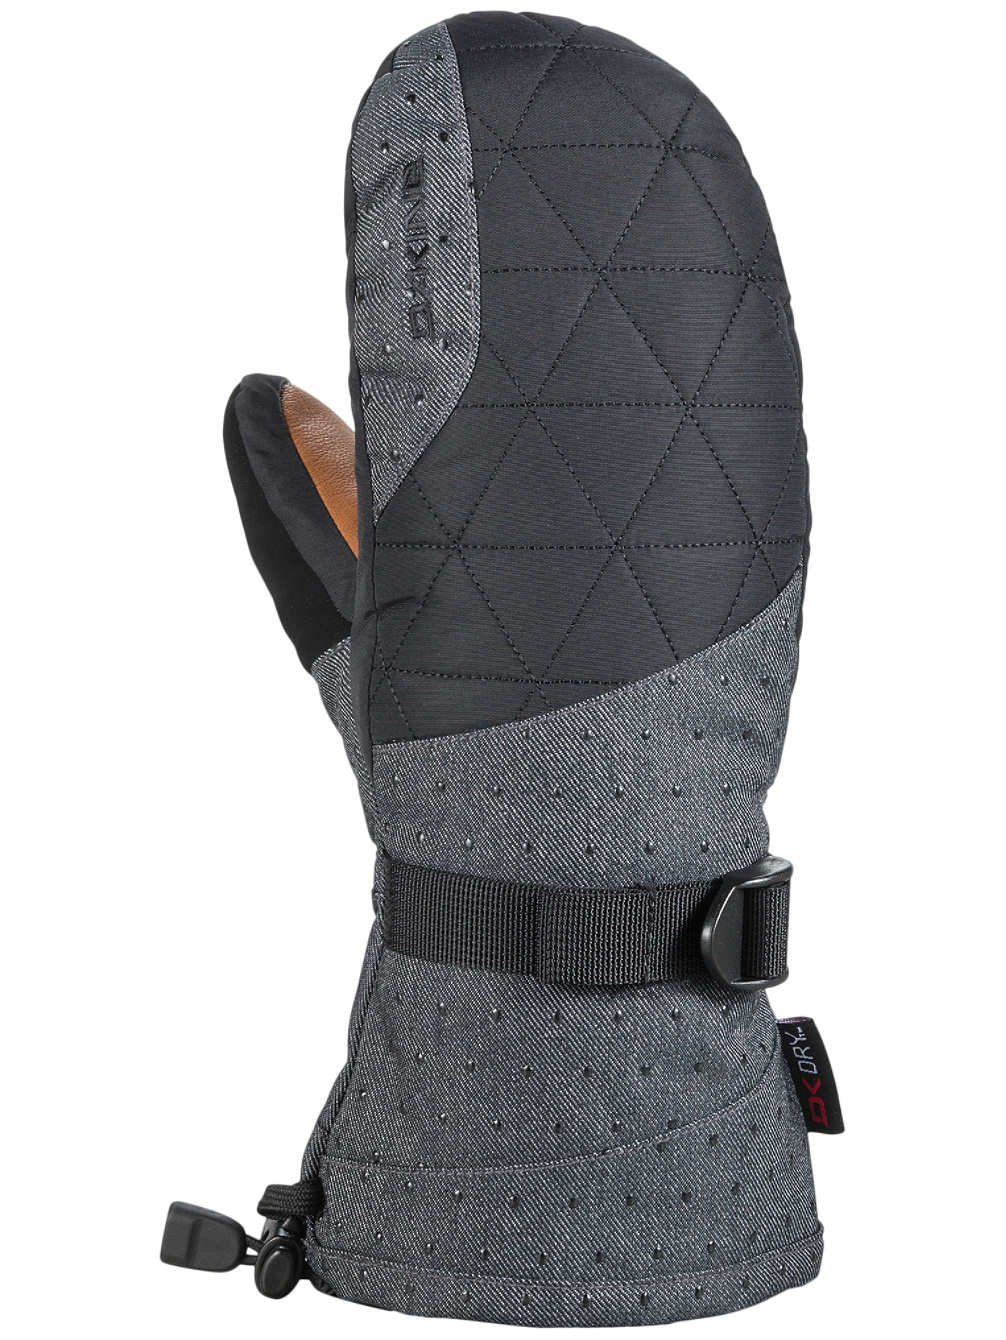 Dakine Camino Leather Ladies Mitt 2018 10000713BLK